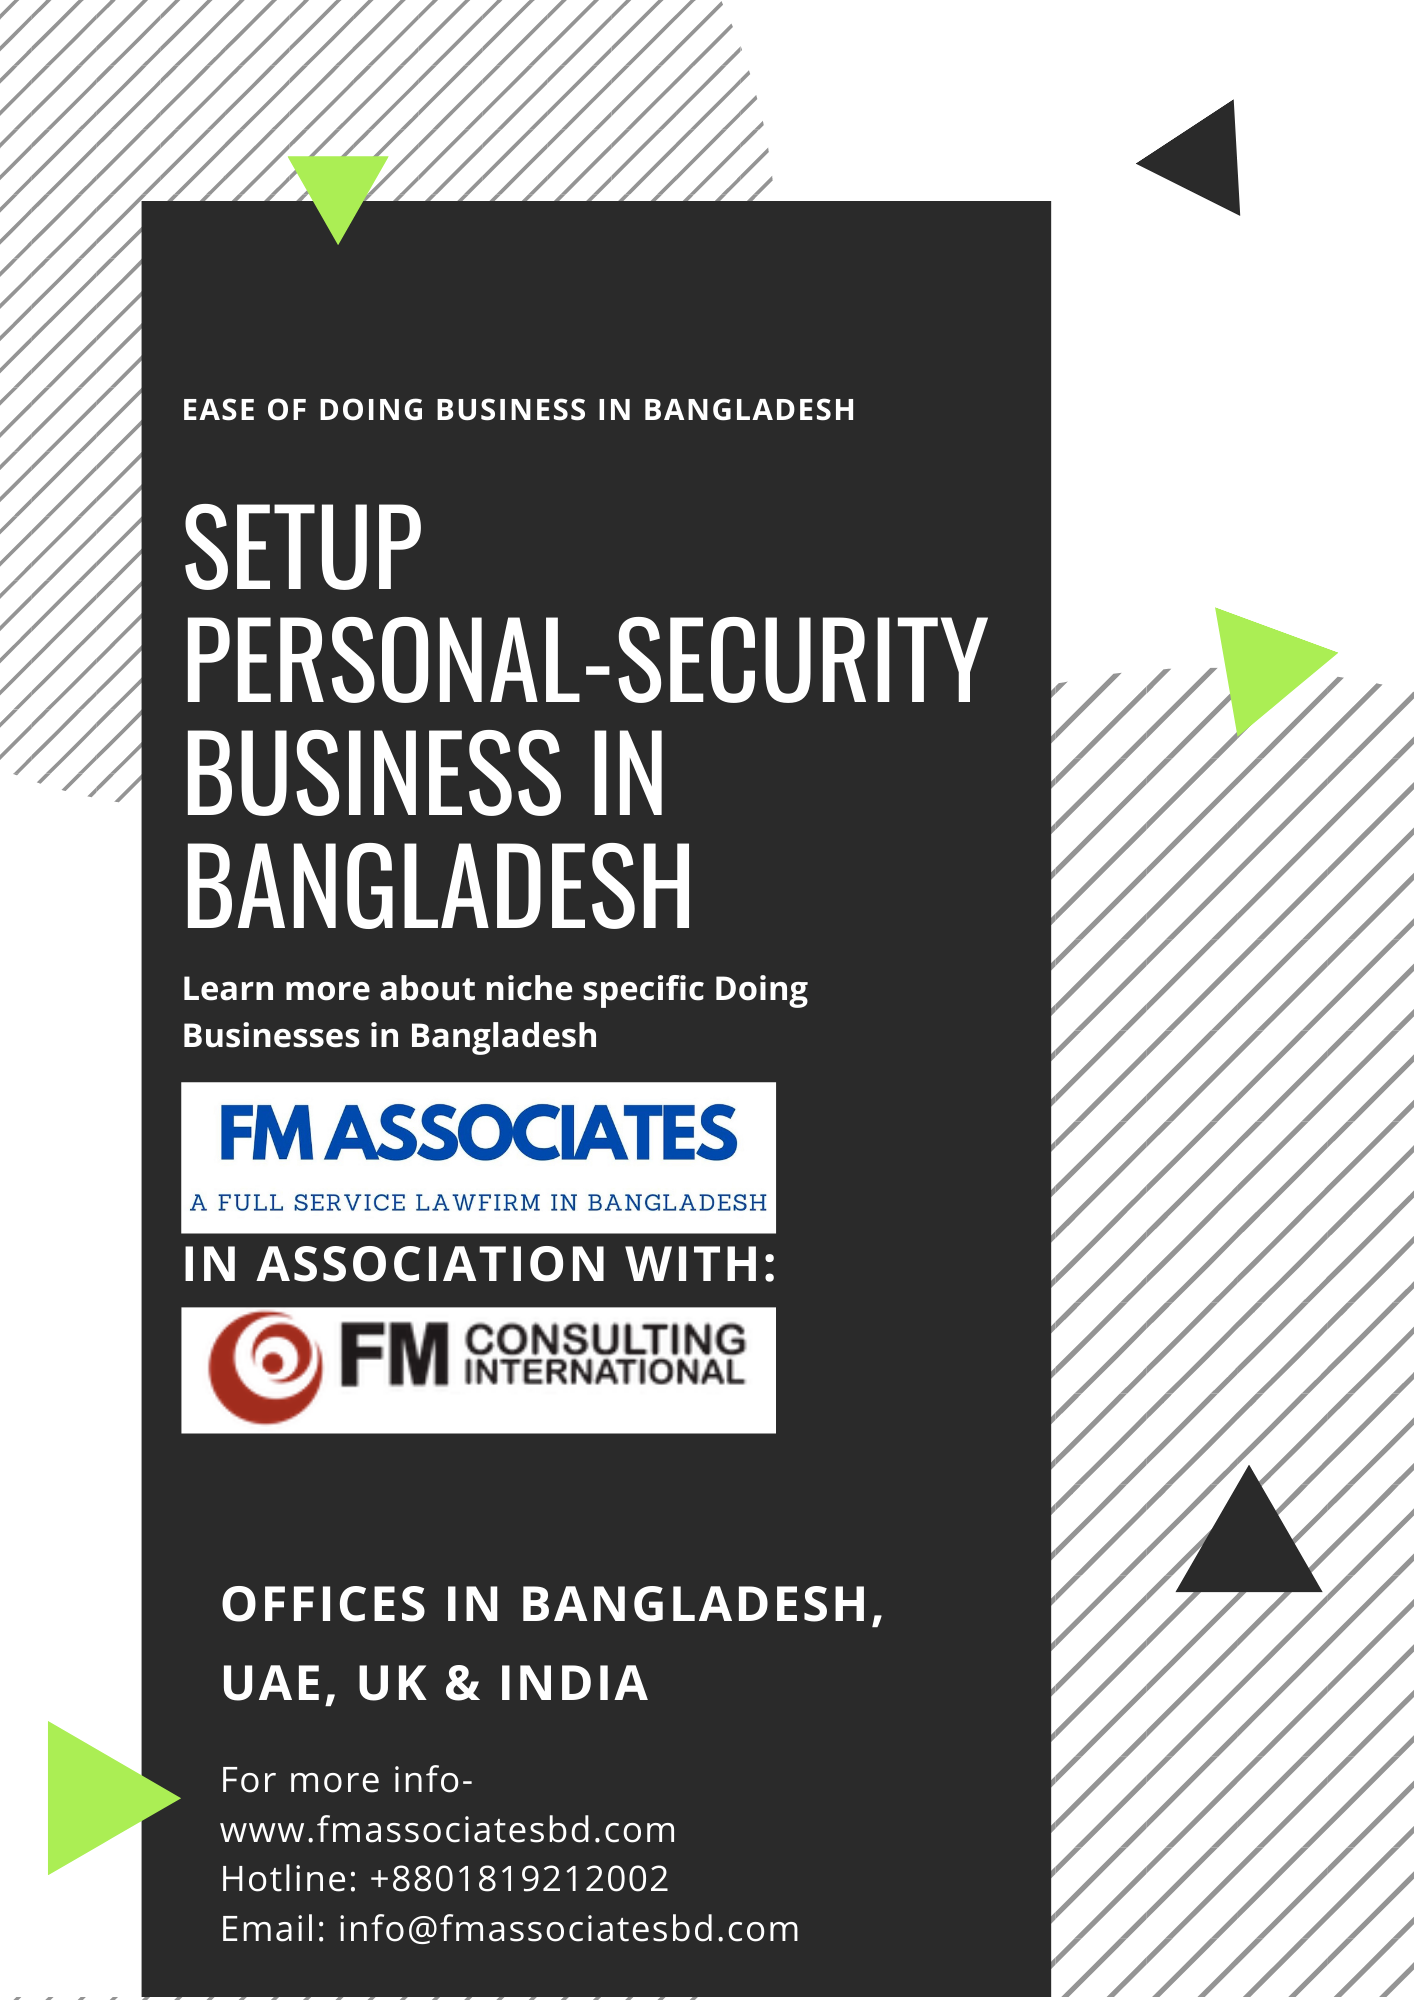 How to Setup Security Business in Bangladesh